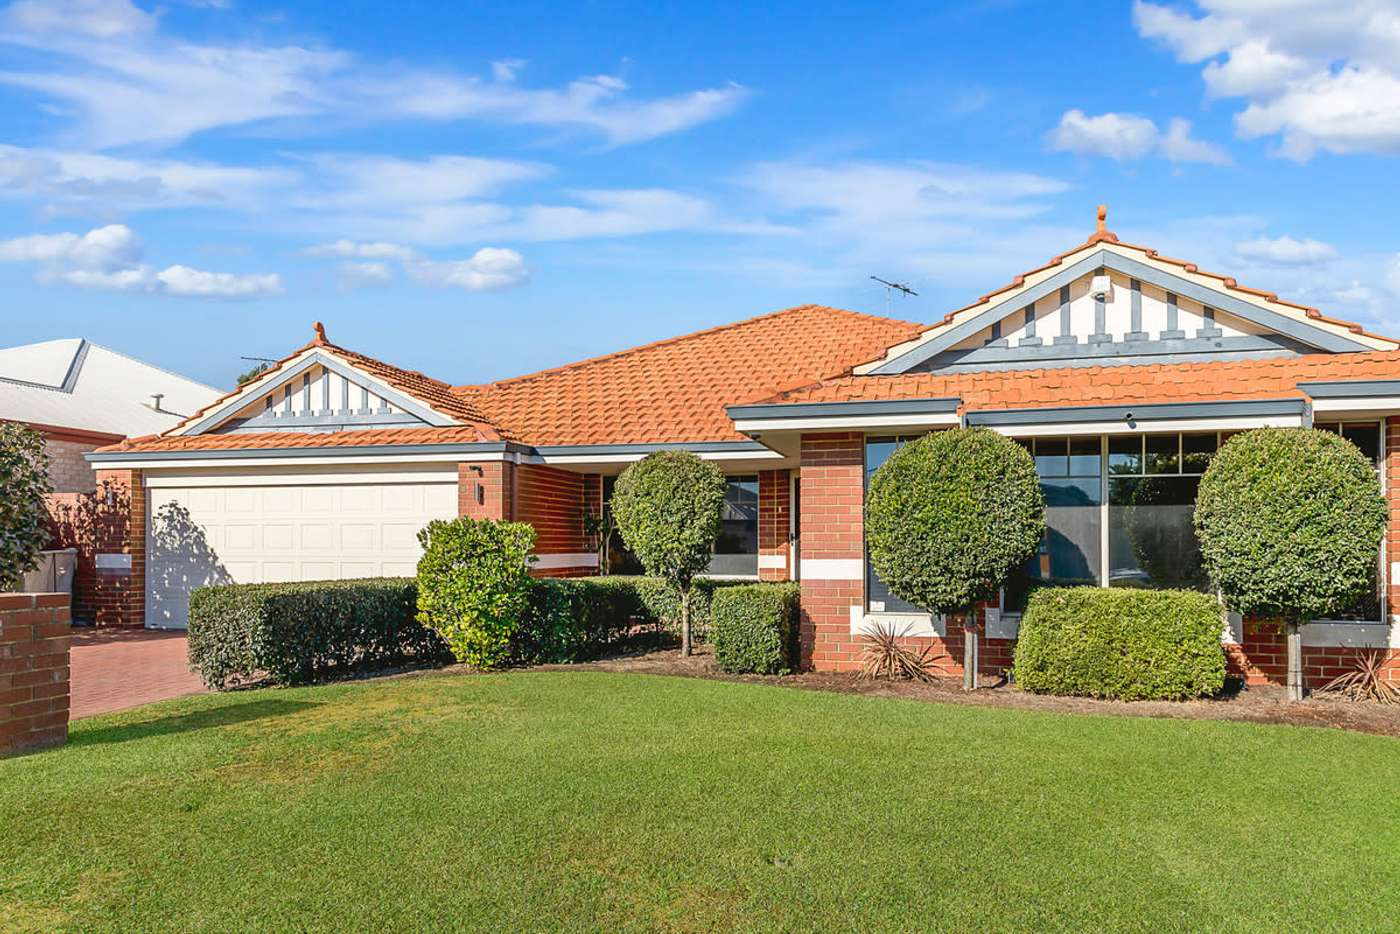 Main view of Homely house listing, 43 Pensacola Avenue, Caversham WA 6055